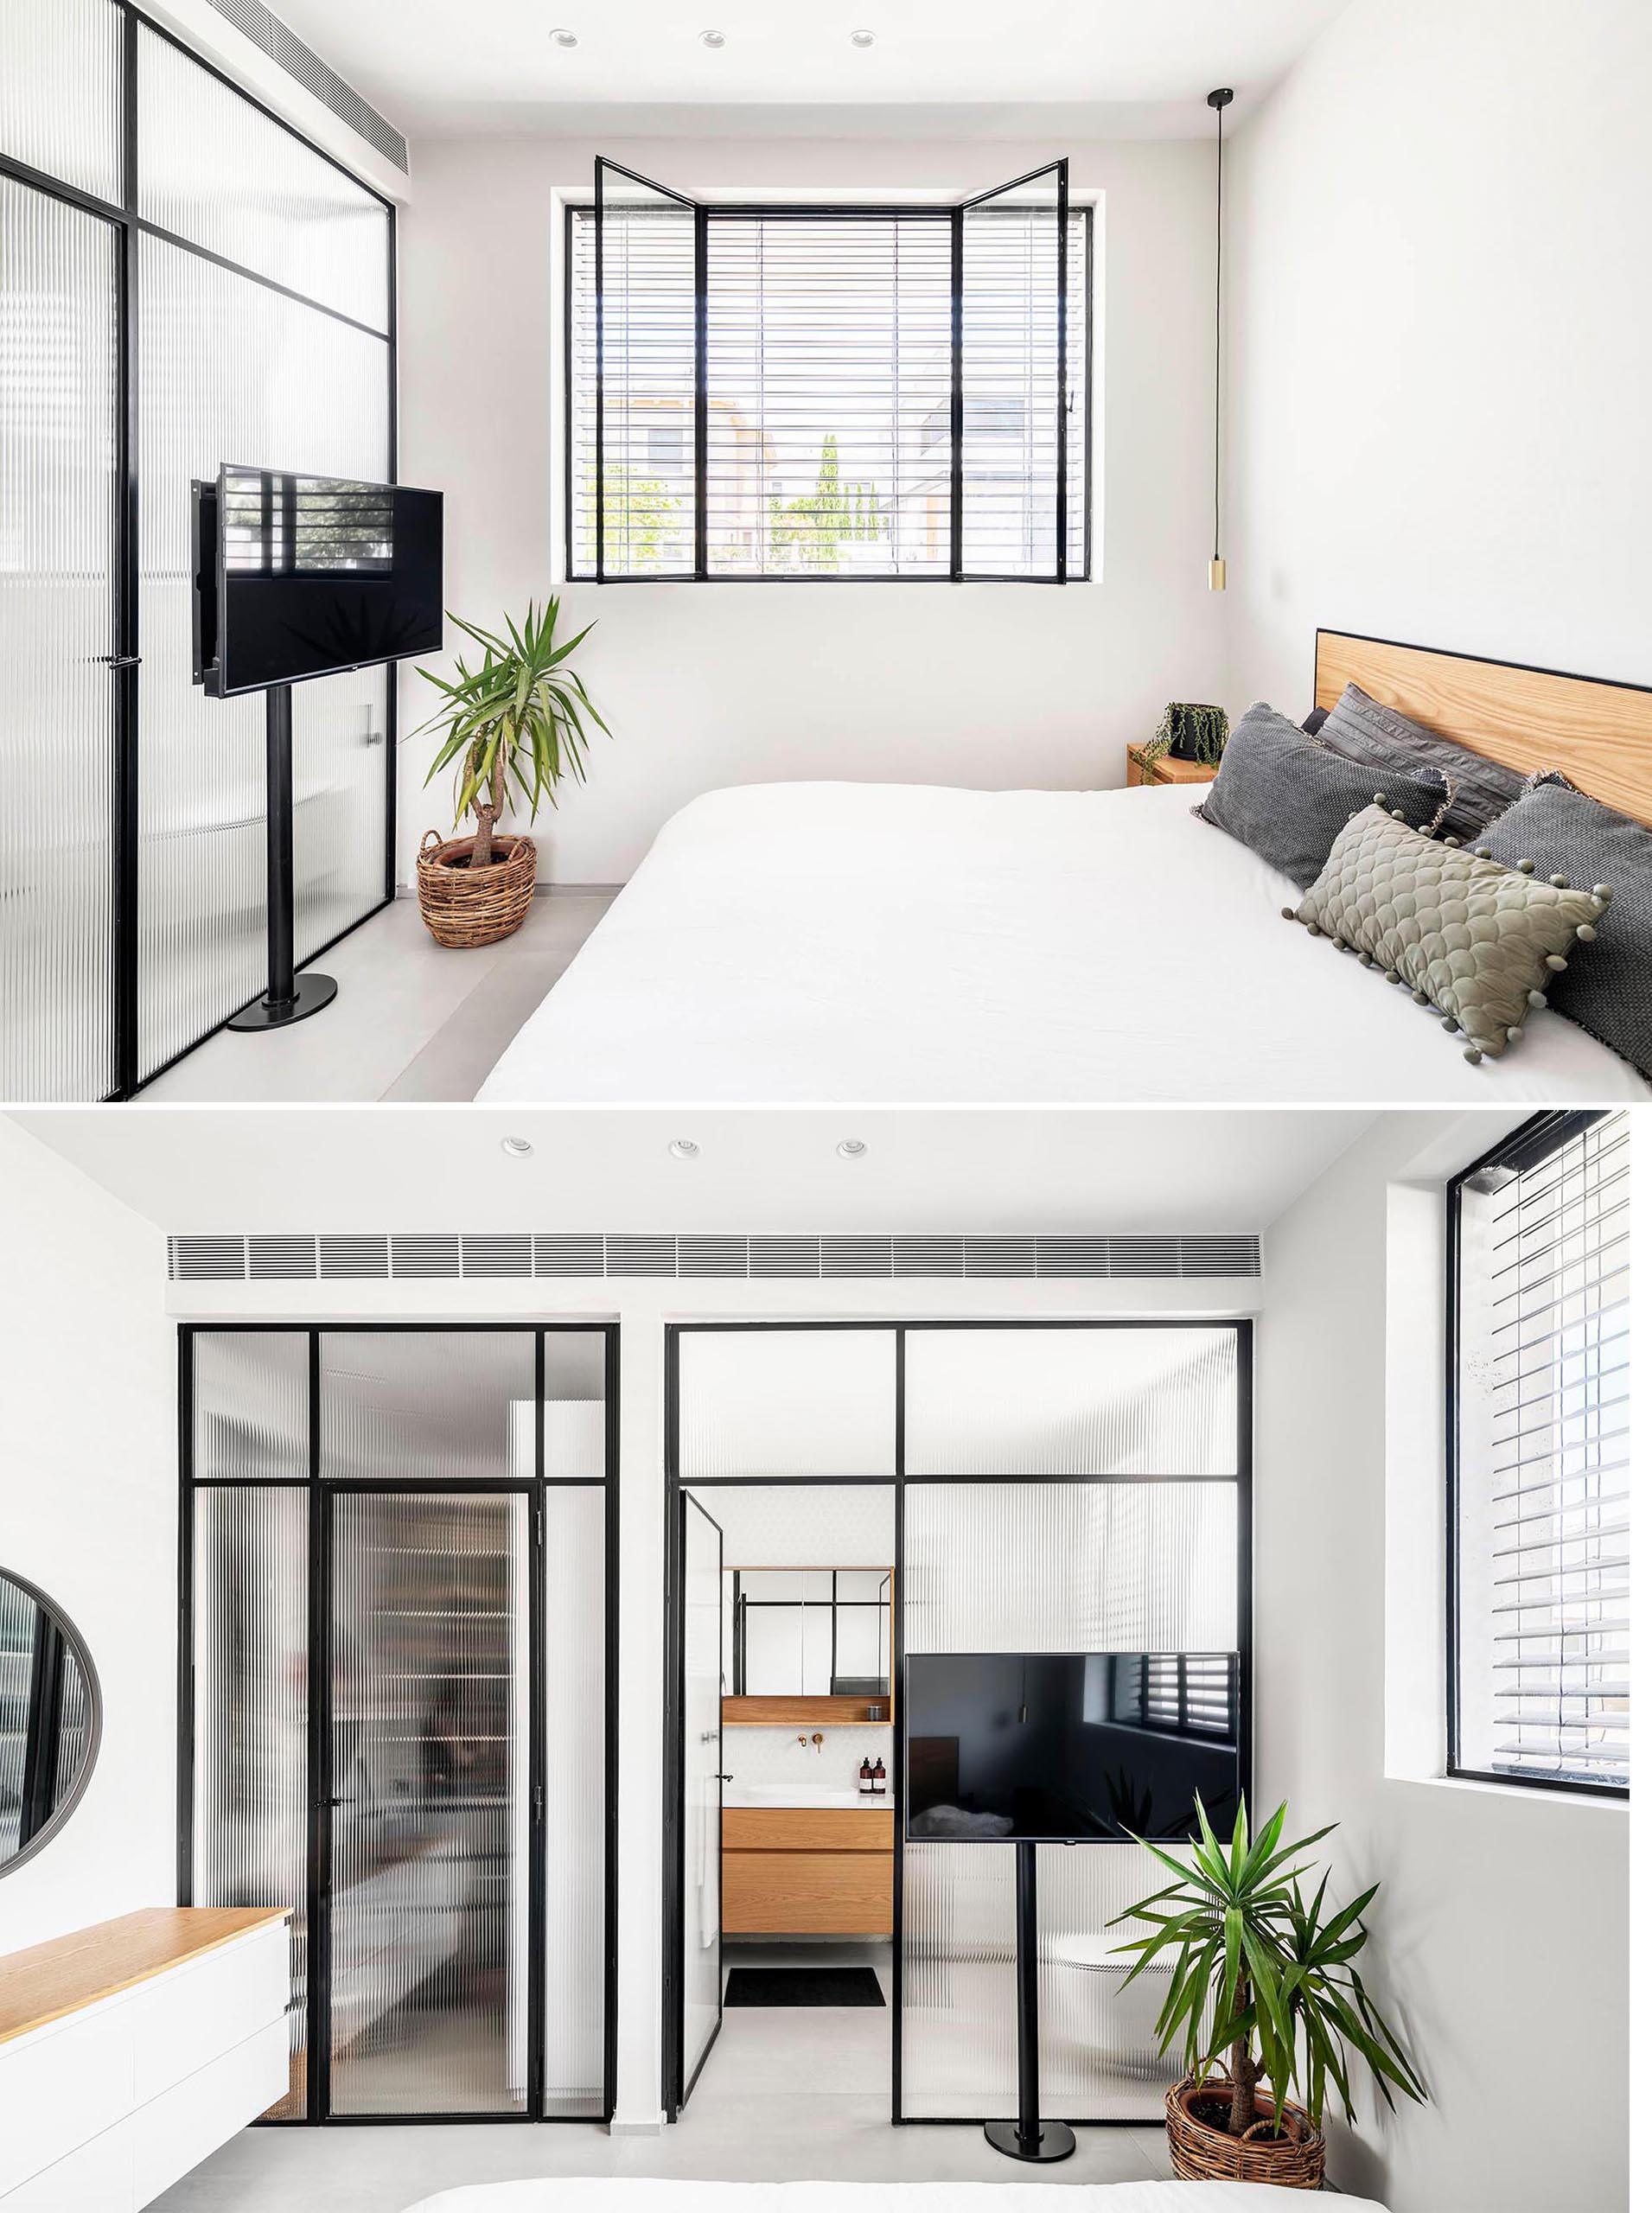 This modern master bedroom has an en-suite bathroom and built-in closet. Stripe-textured glass with iron frames separates these areas without obscuring the light.